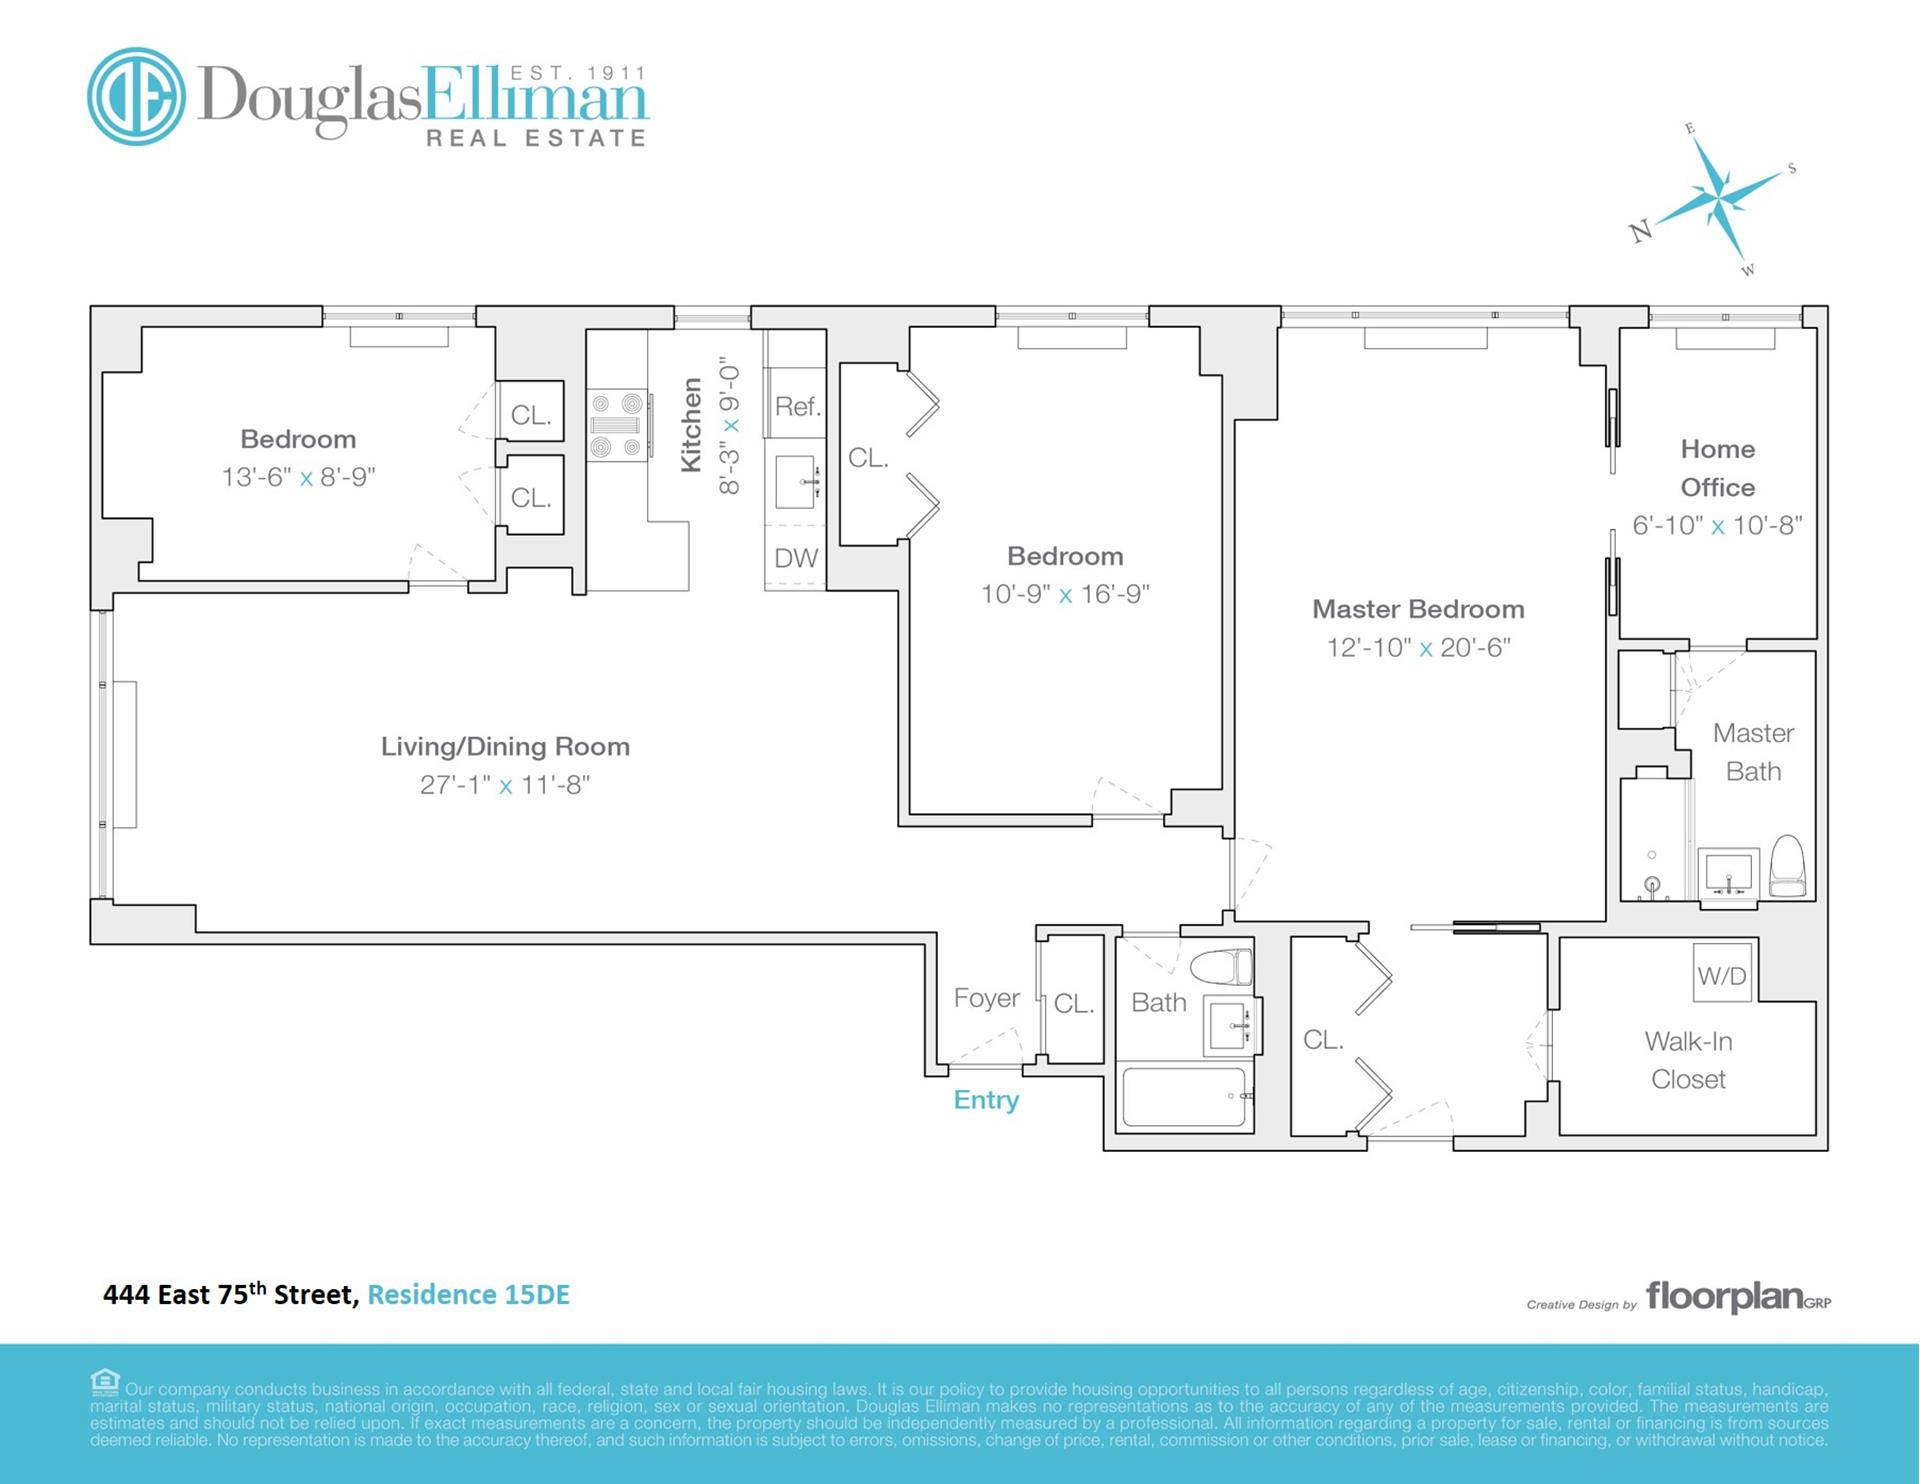 Floor plan of 444 East 75th St, 15DE - Upper East Side, New York